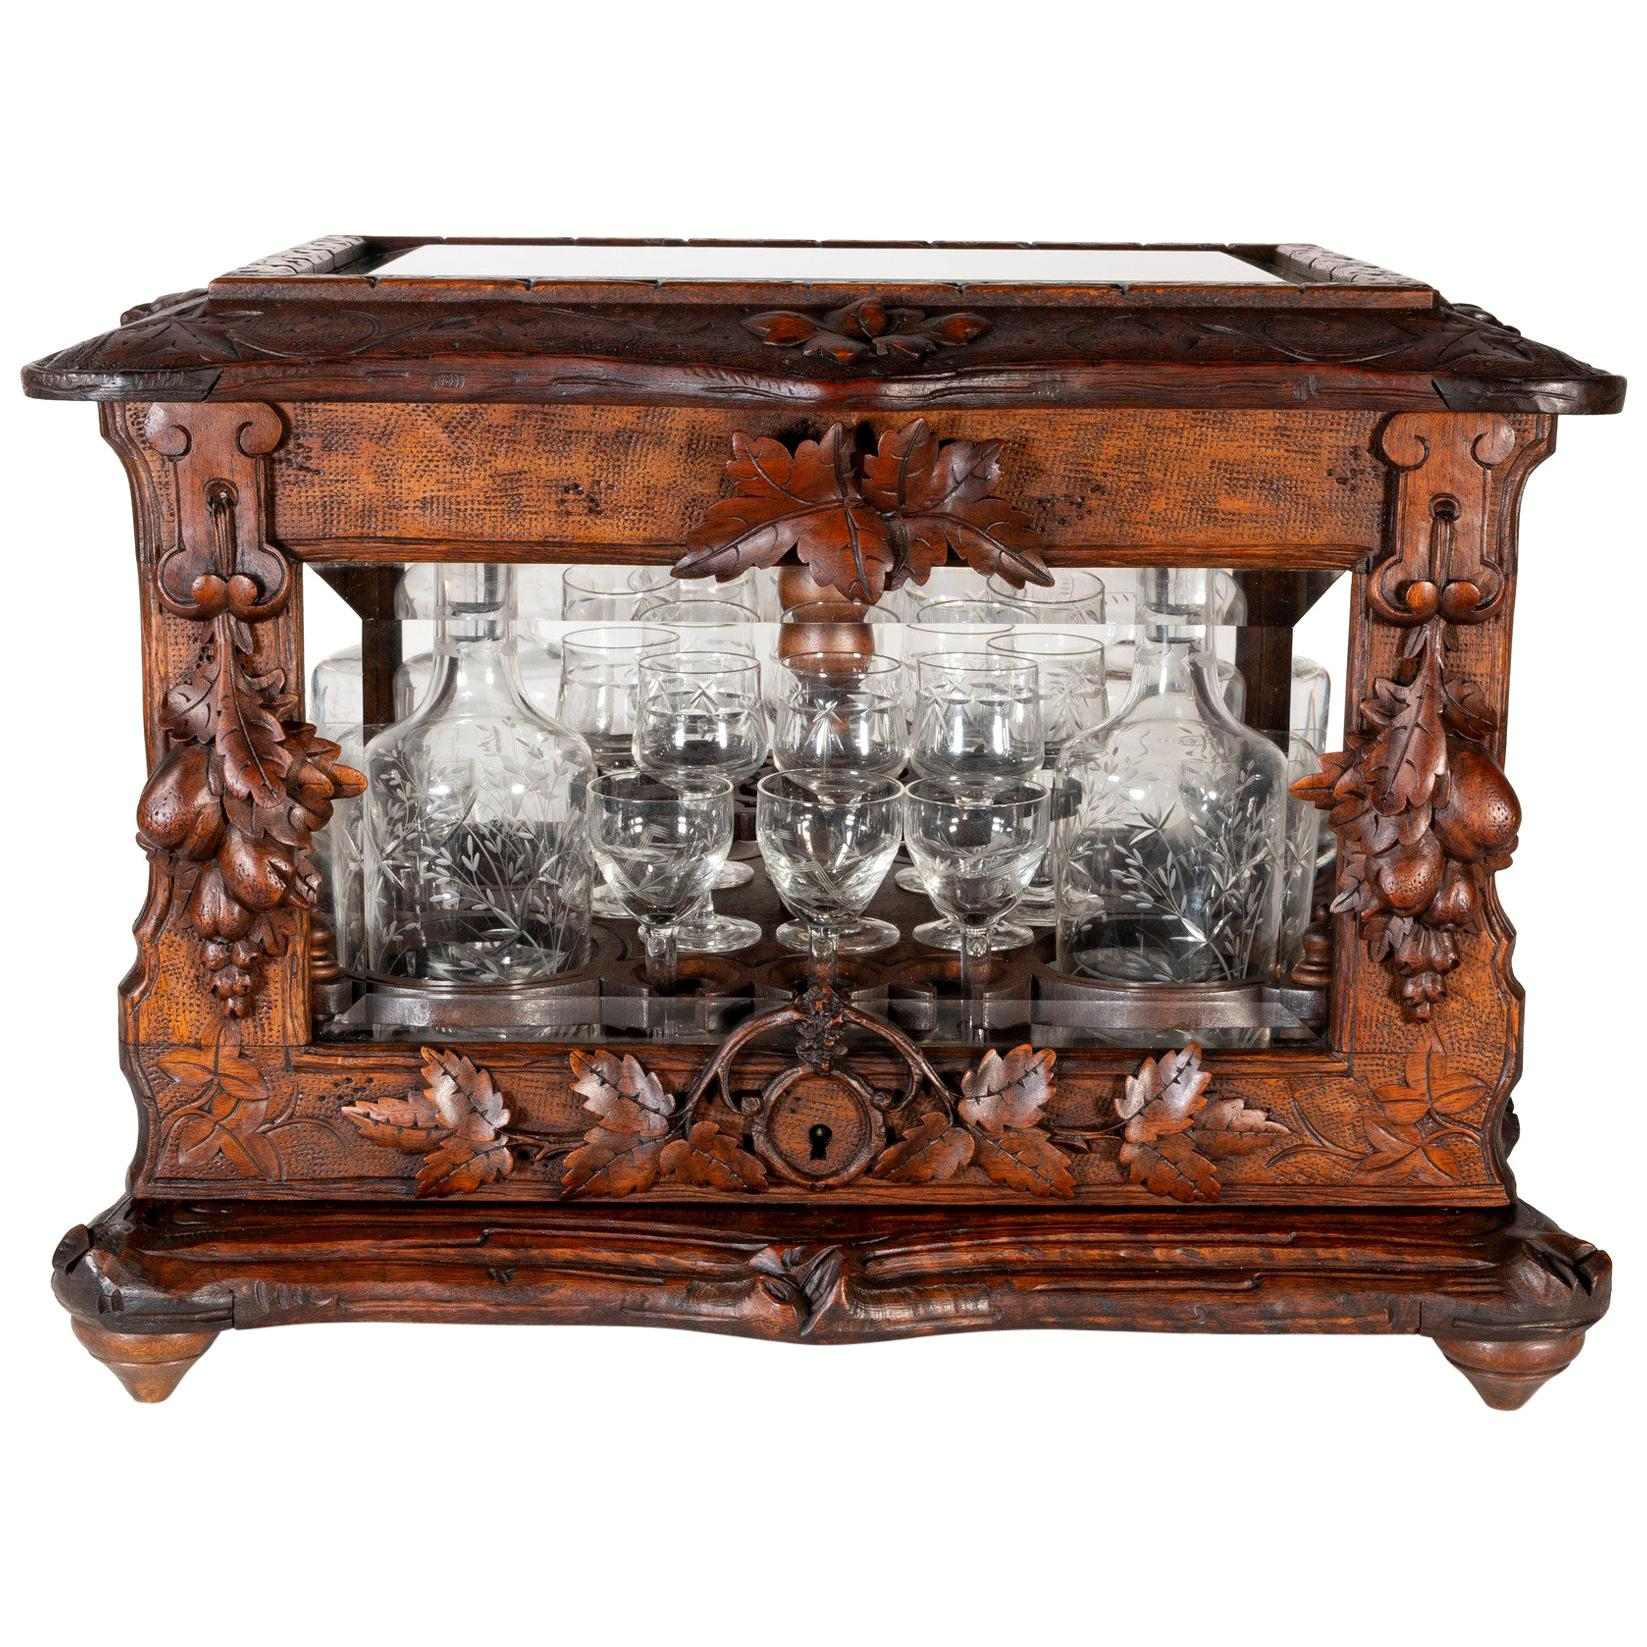 Carved Figures 1800-1899 Loyal Antique Black Forest Carved Wood Cabinet Cupboard-wood Carving-wood Wall Plaque-